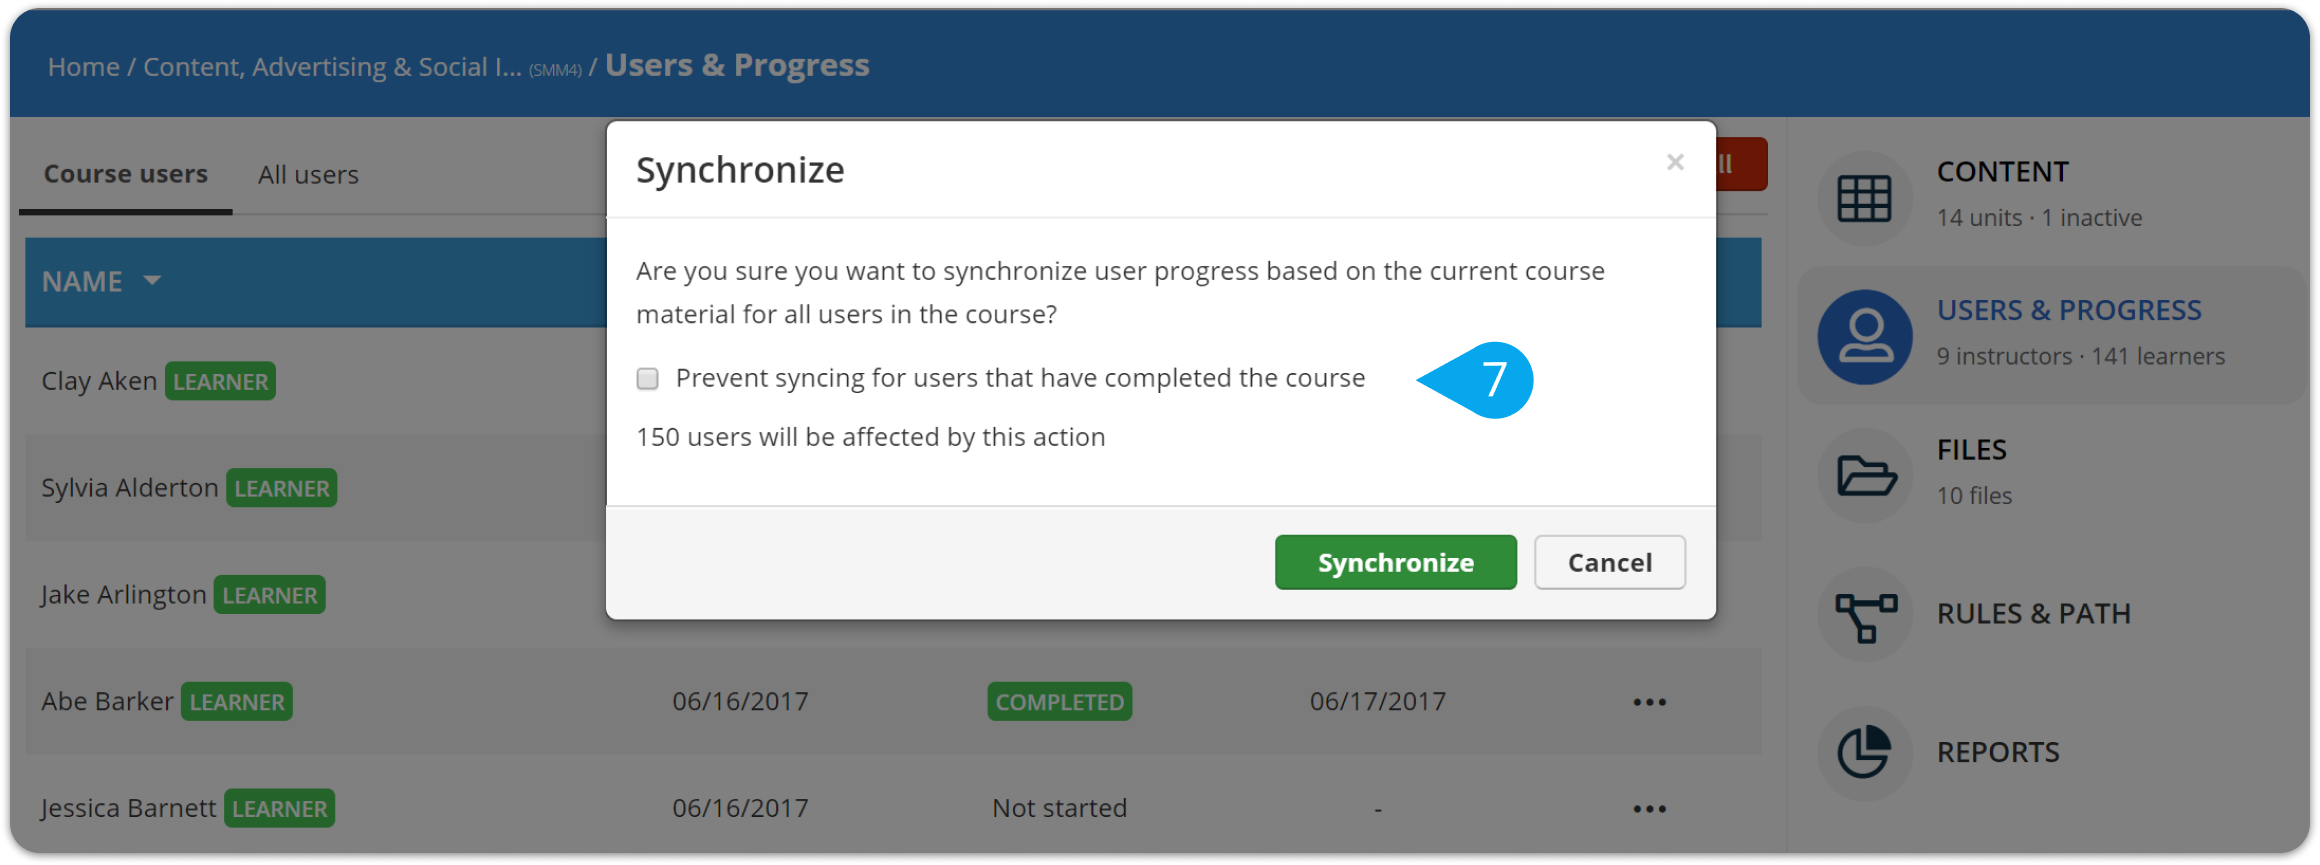 How to change a user's course completion status – TalentLMS Support